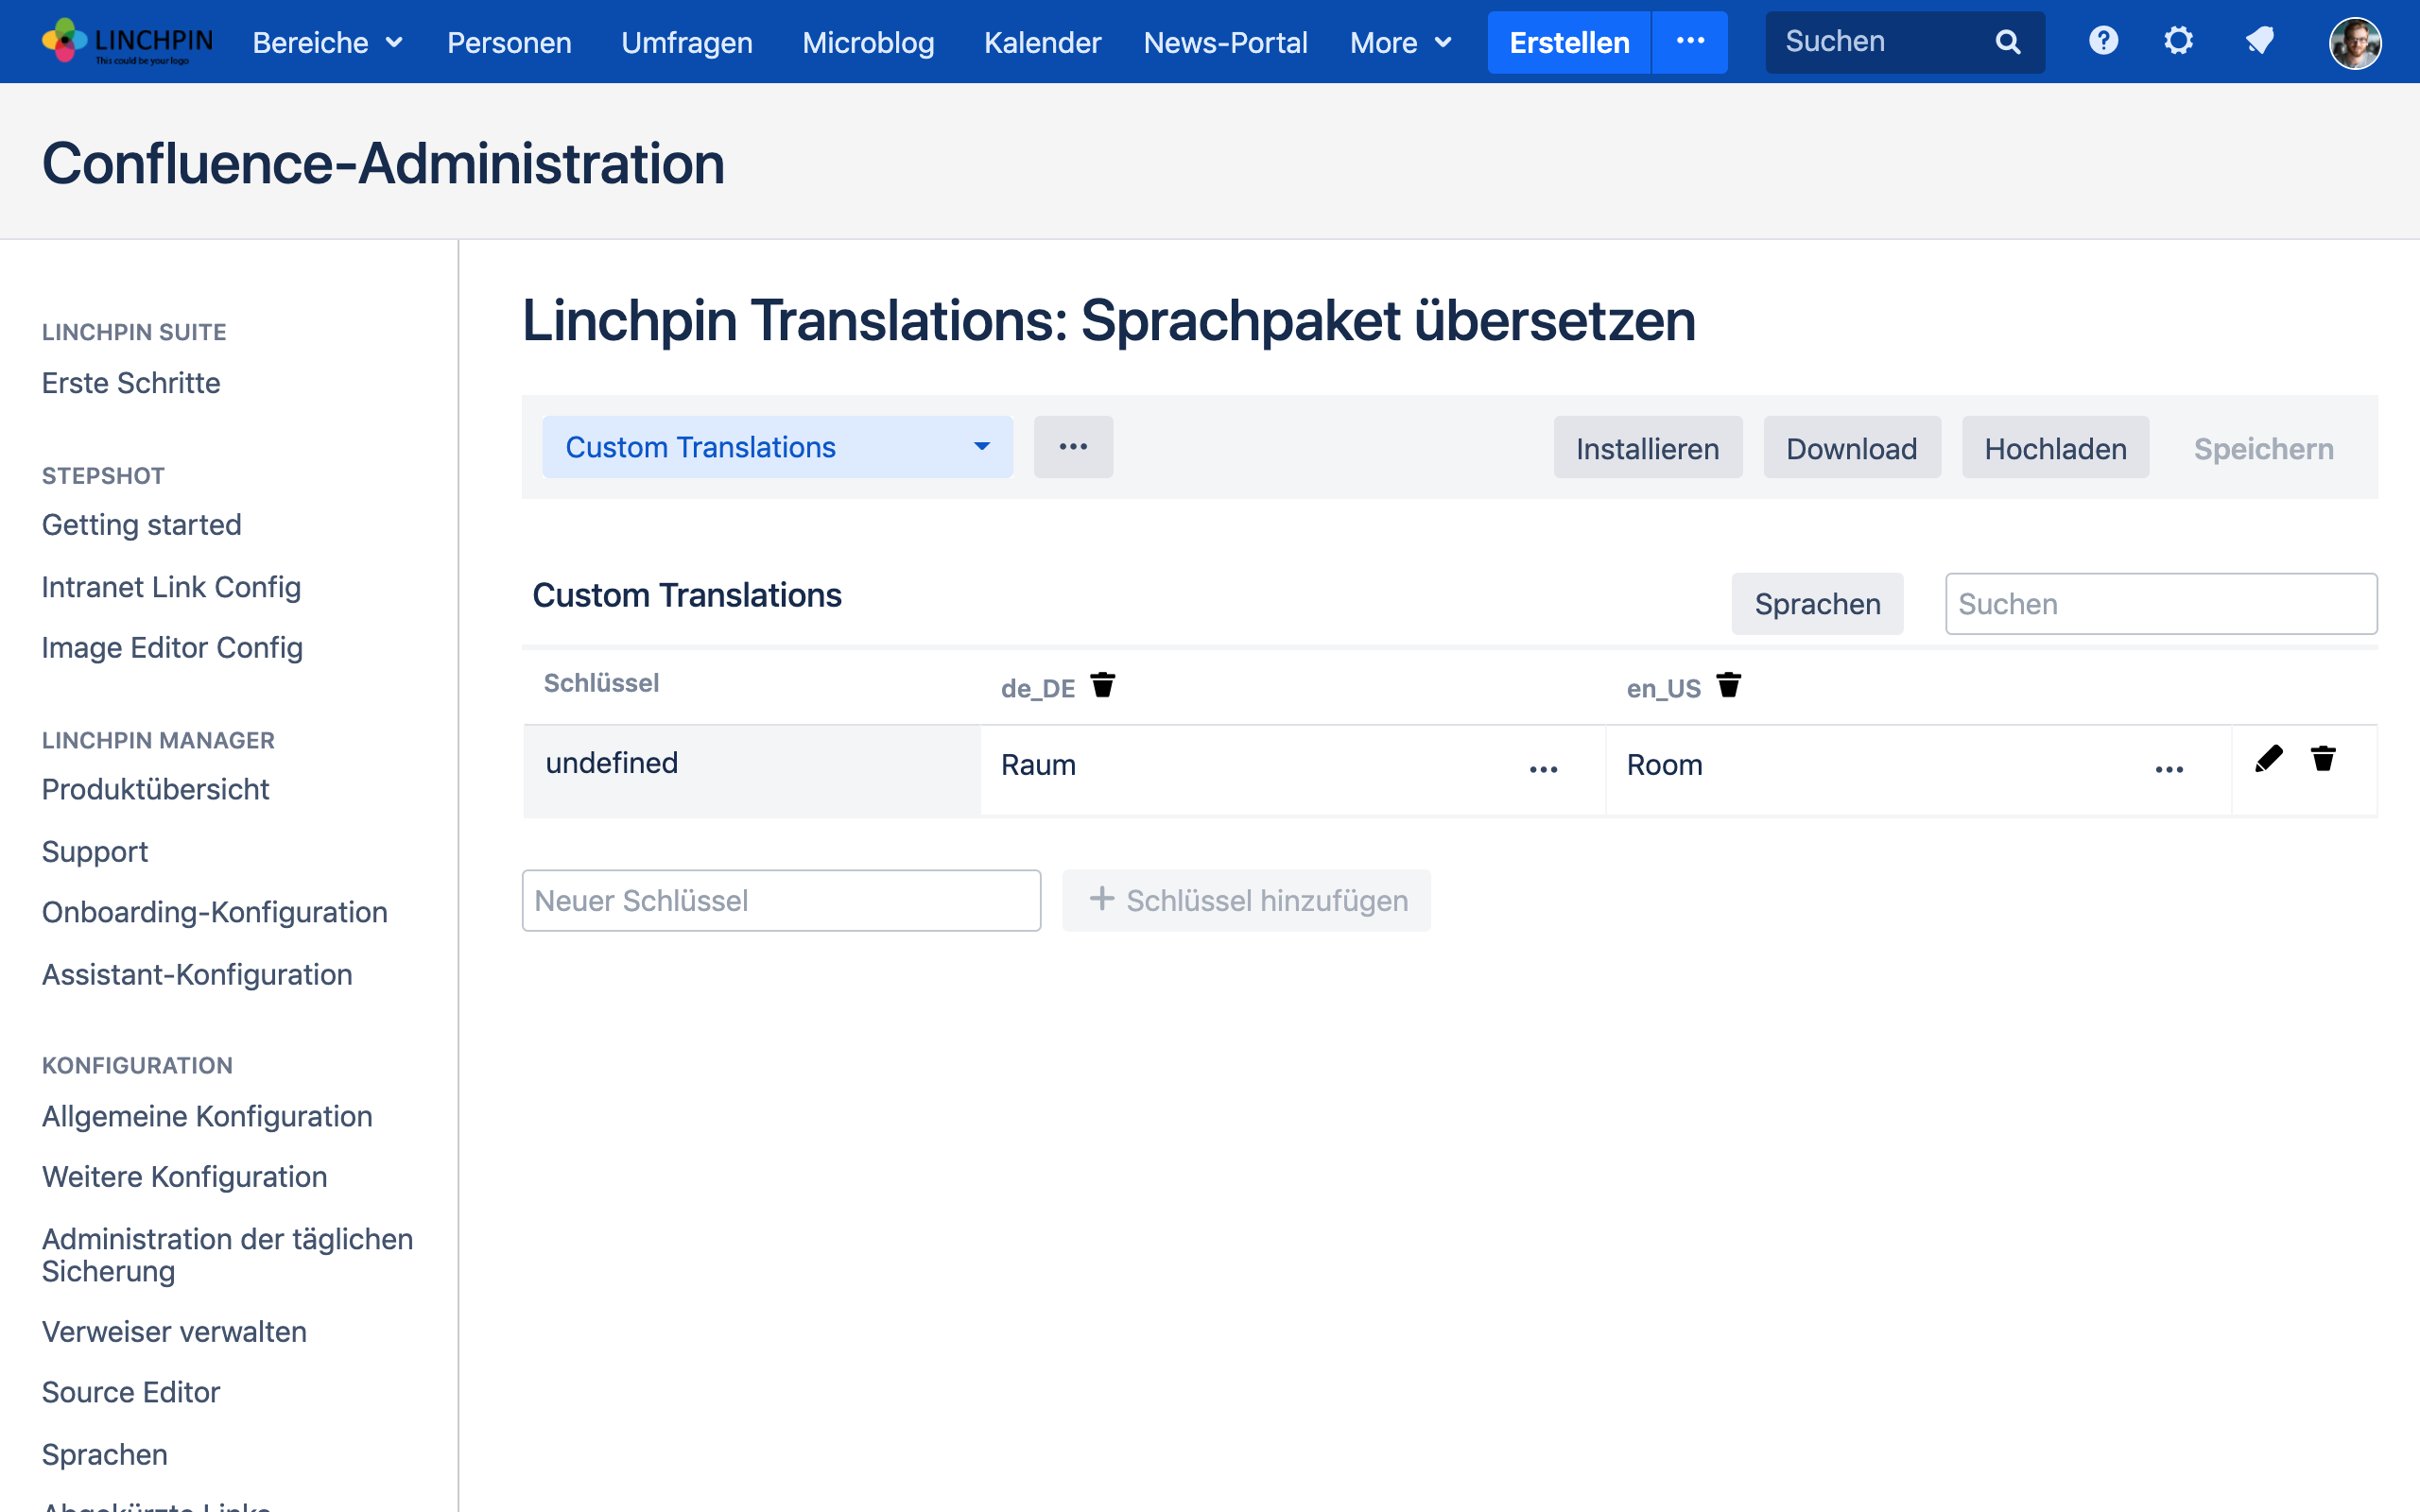 Linchpin Suite - Translations